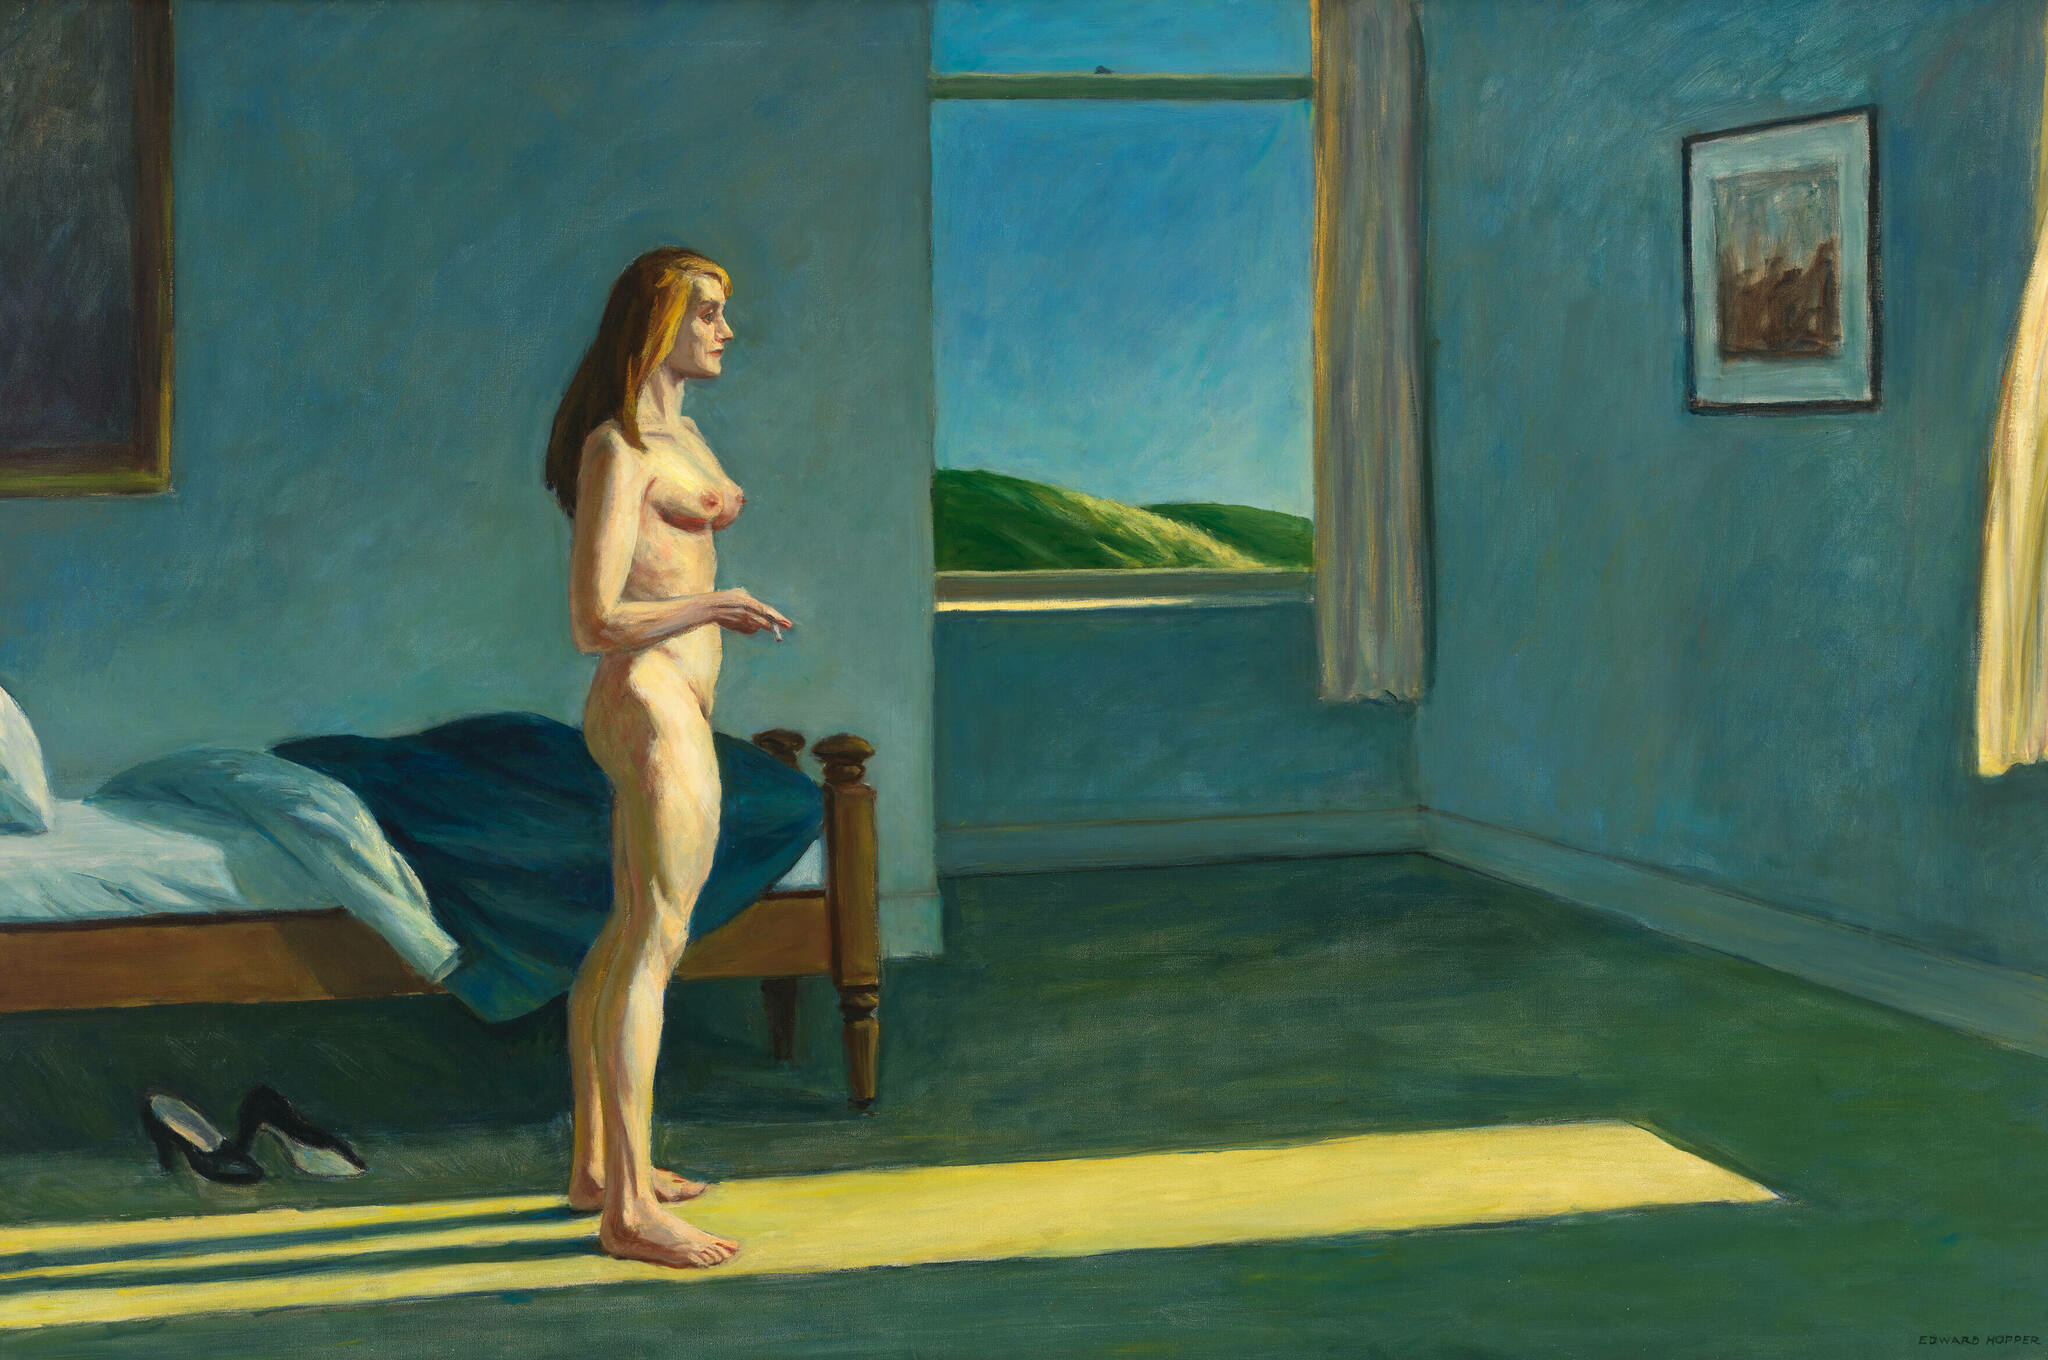 A nude white woman stands in a bluish bedroom and looks out a window as she holds a cigarette.